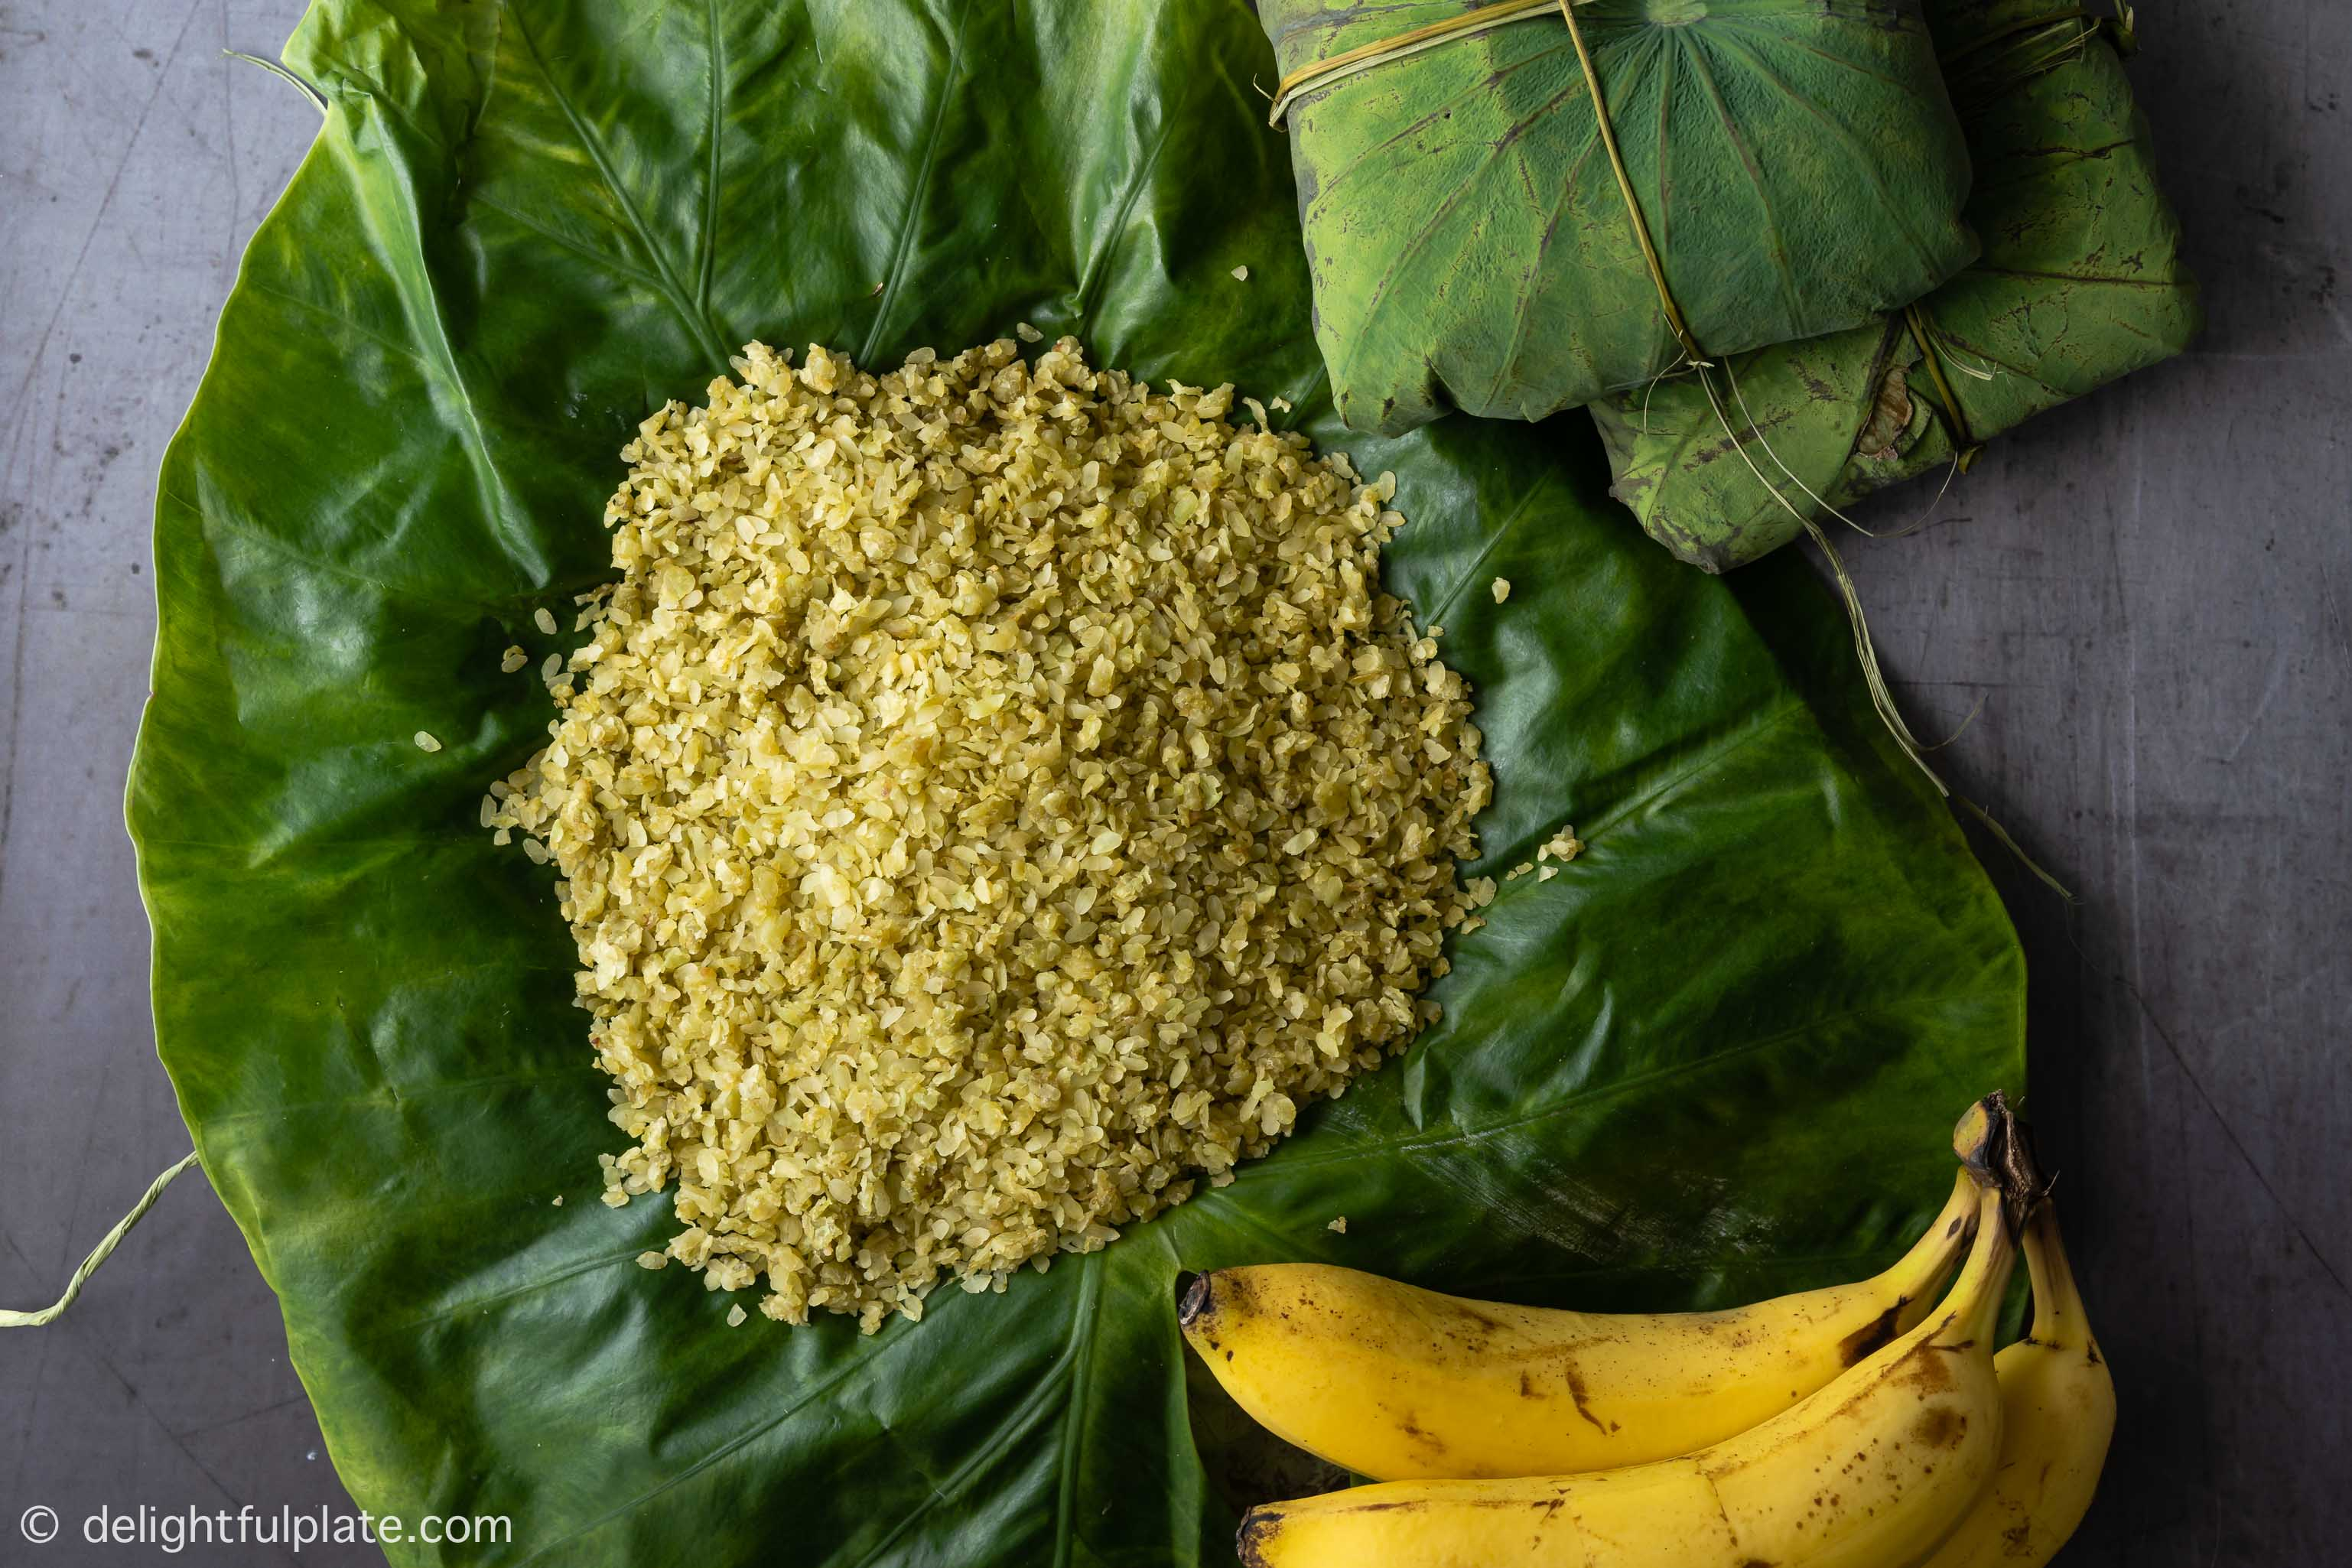 a small pile of Vietnamese green young rice, served with ripe bananas